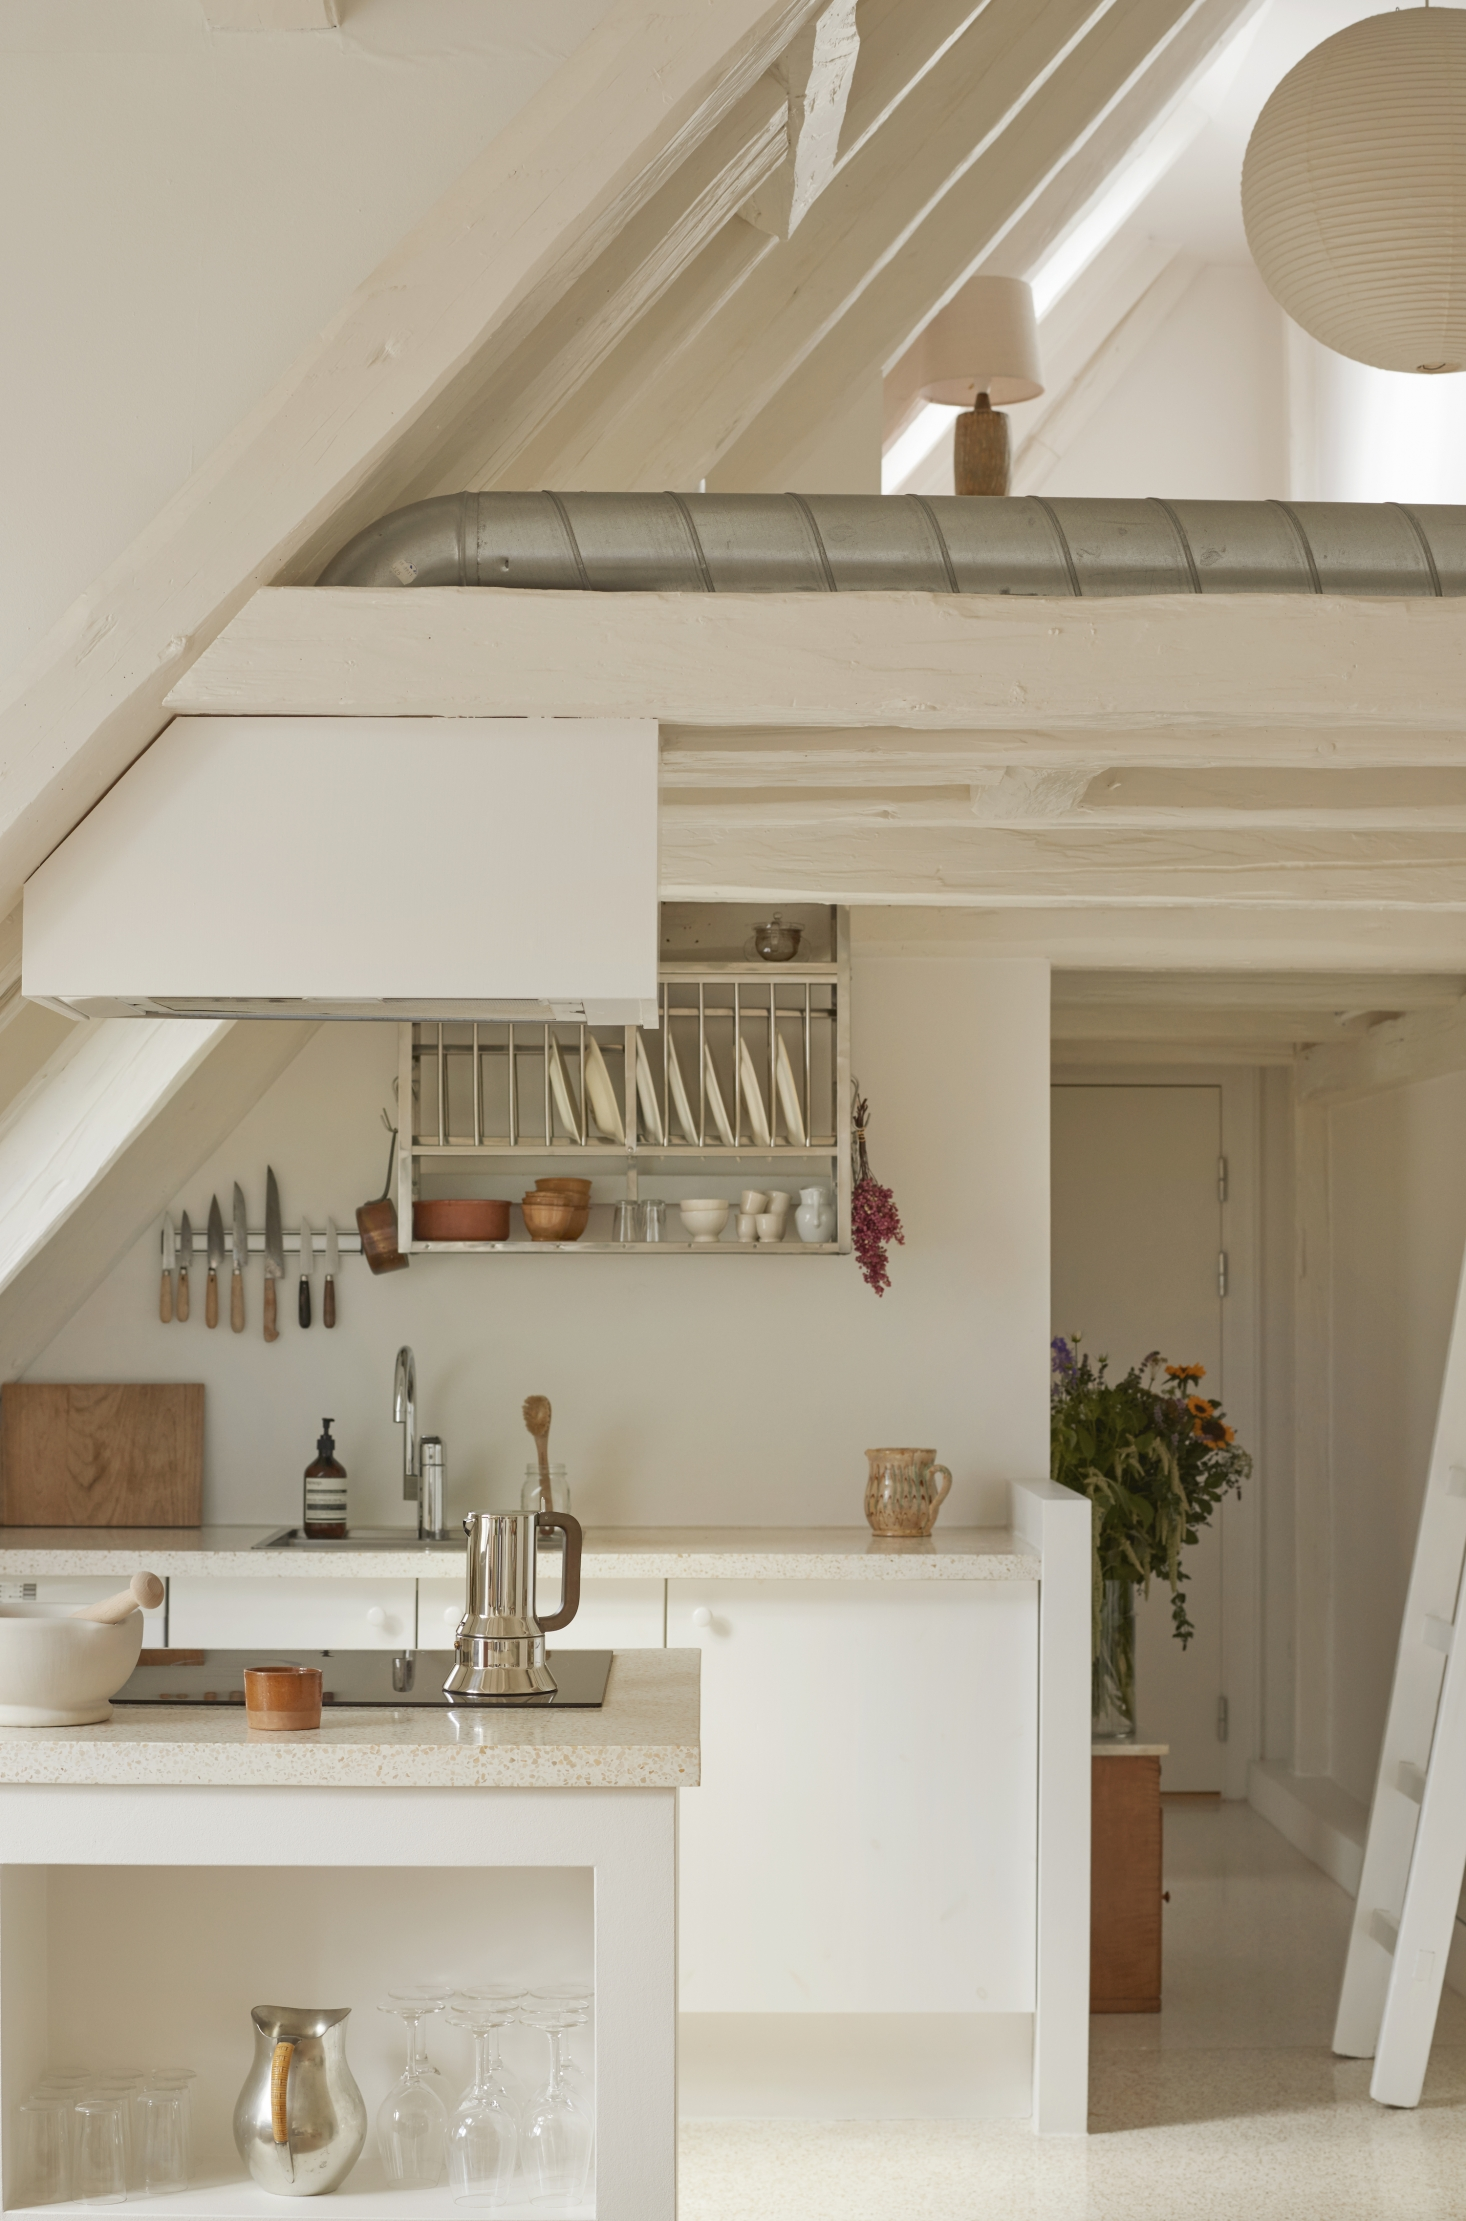 Steal This Look: A Pale and Perfect Under-the-Eaves Kitchen in Copenhagen